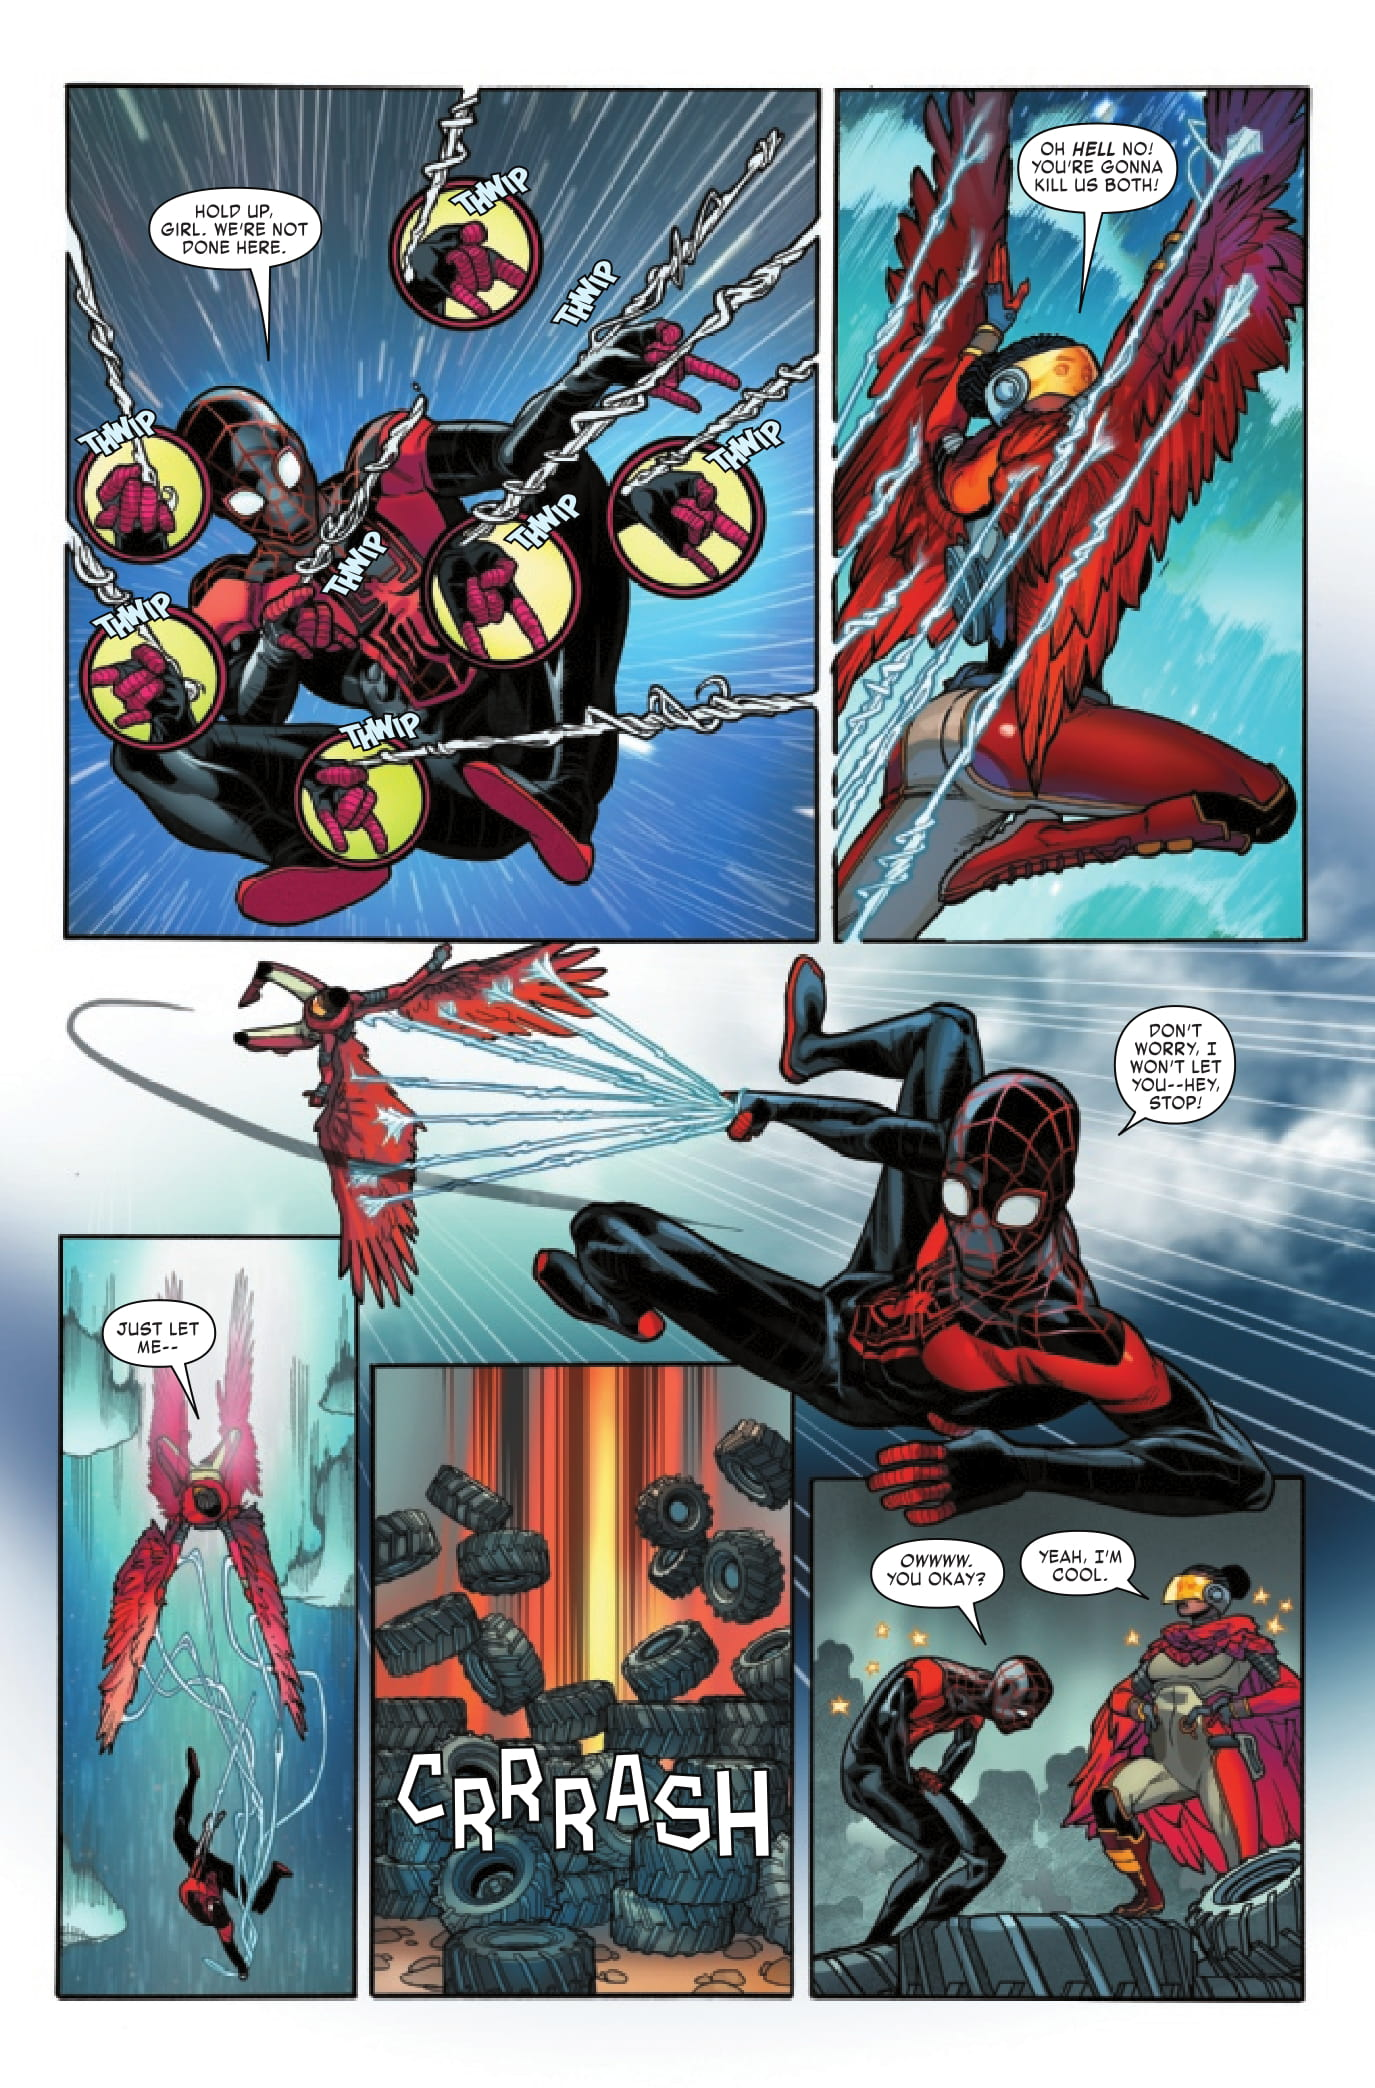 Miles Morales #6 preview page 3